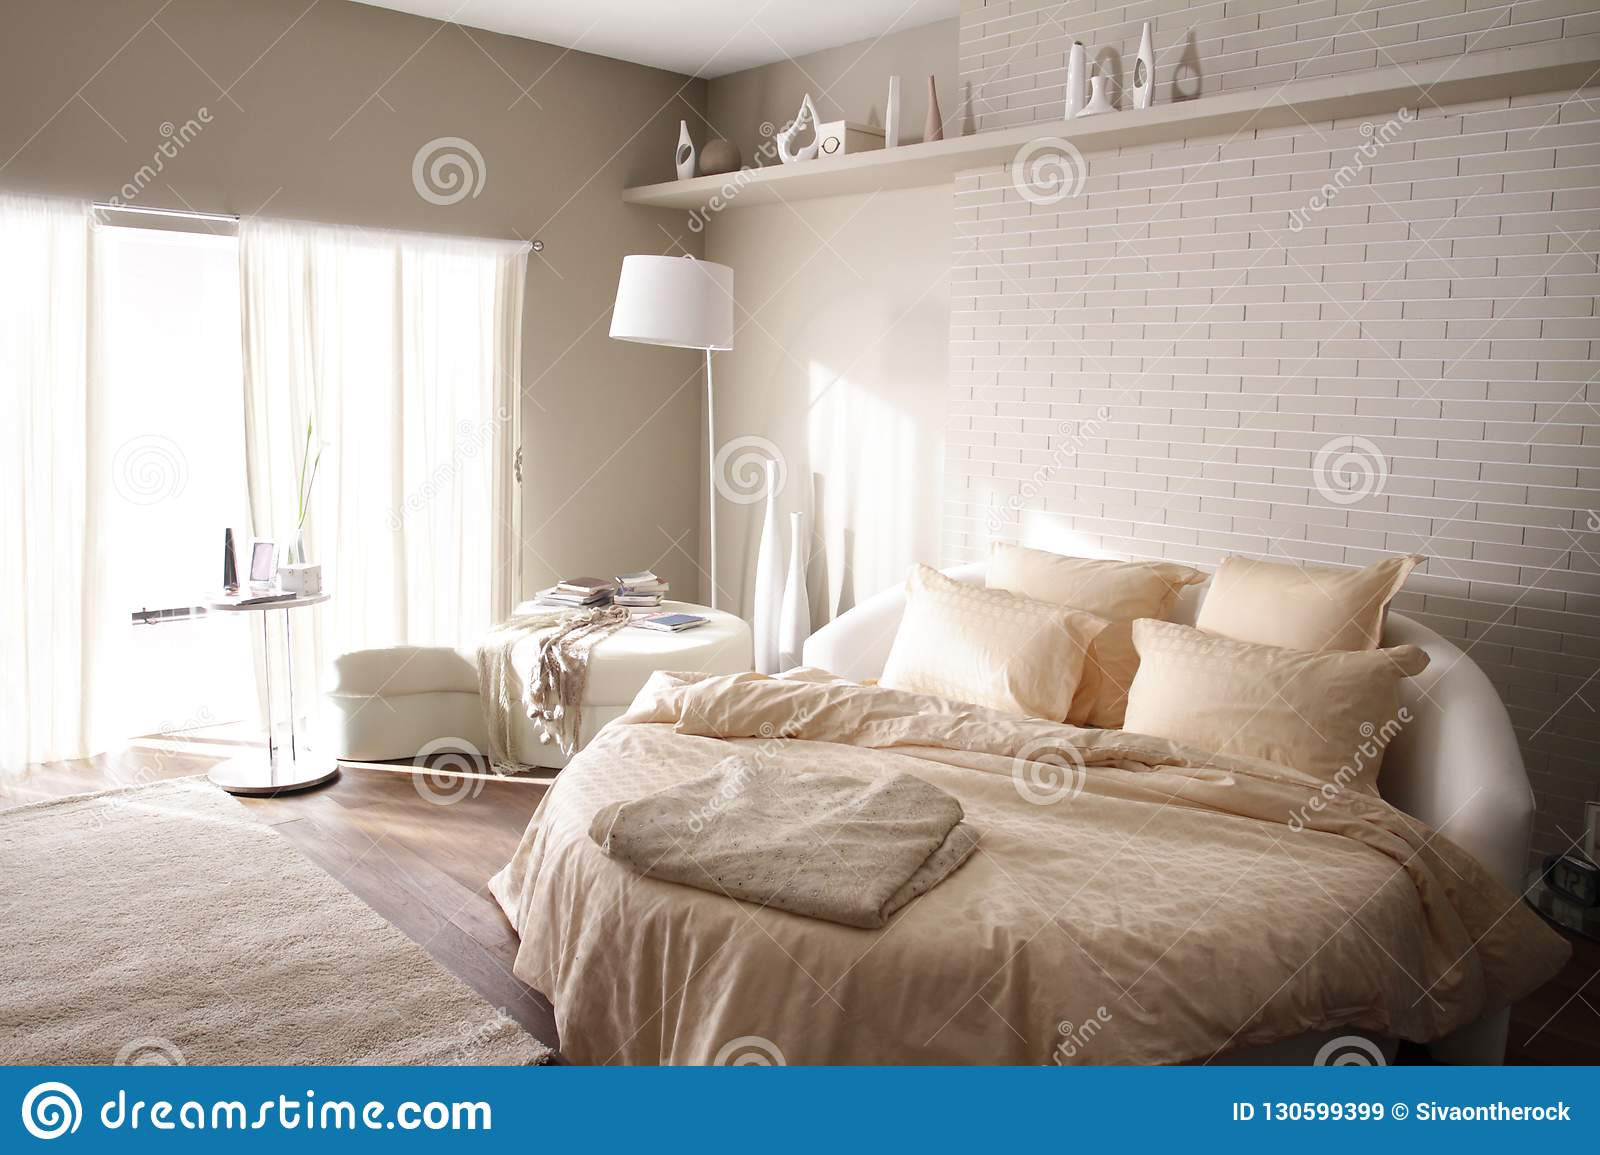 Round bed in beige bedroom stock image. Image of relax ...